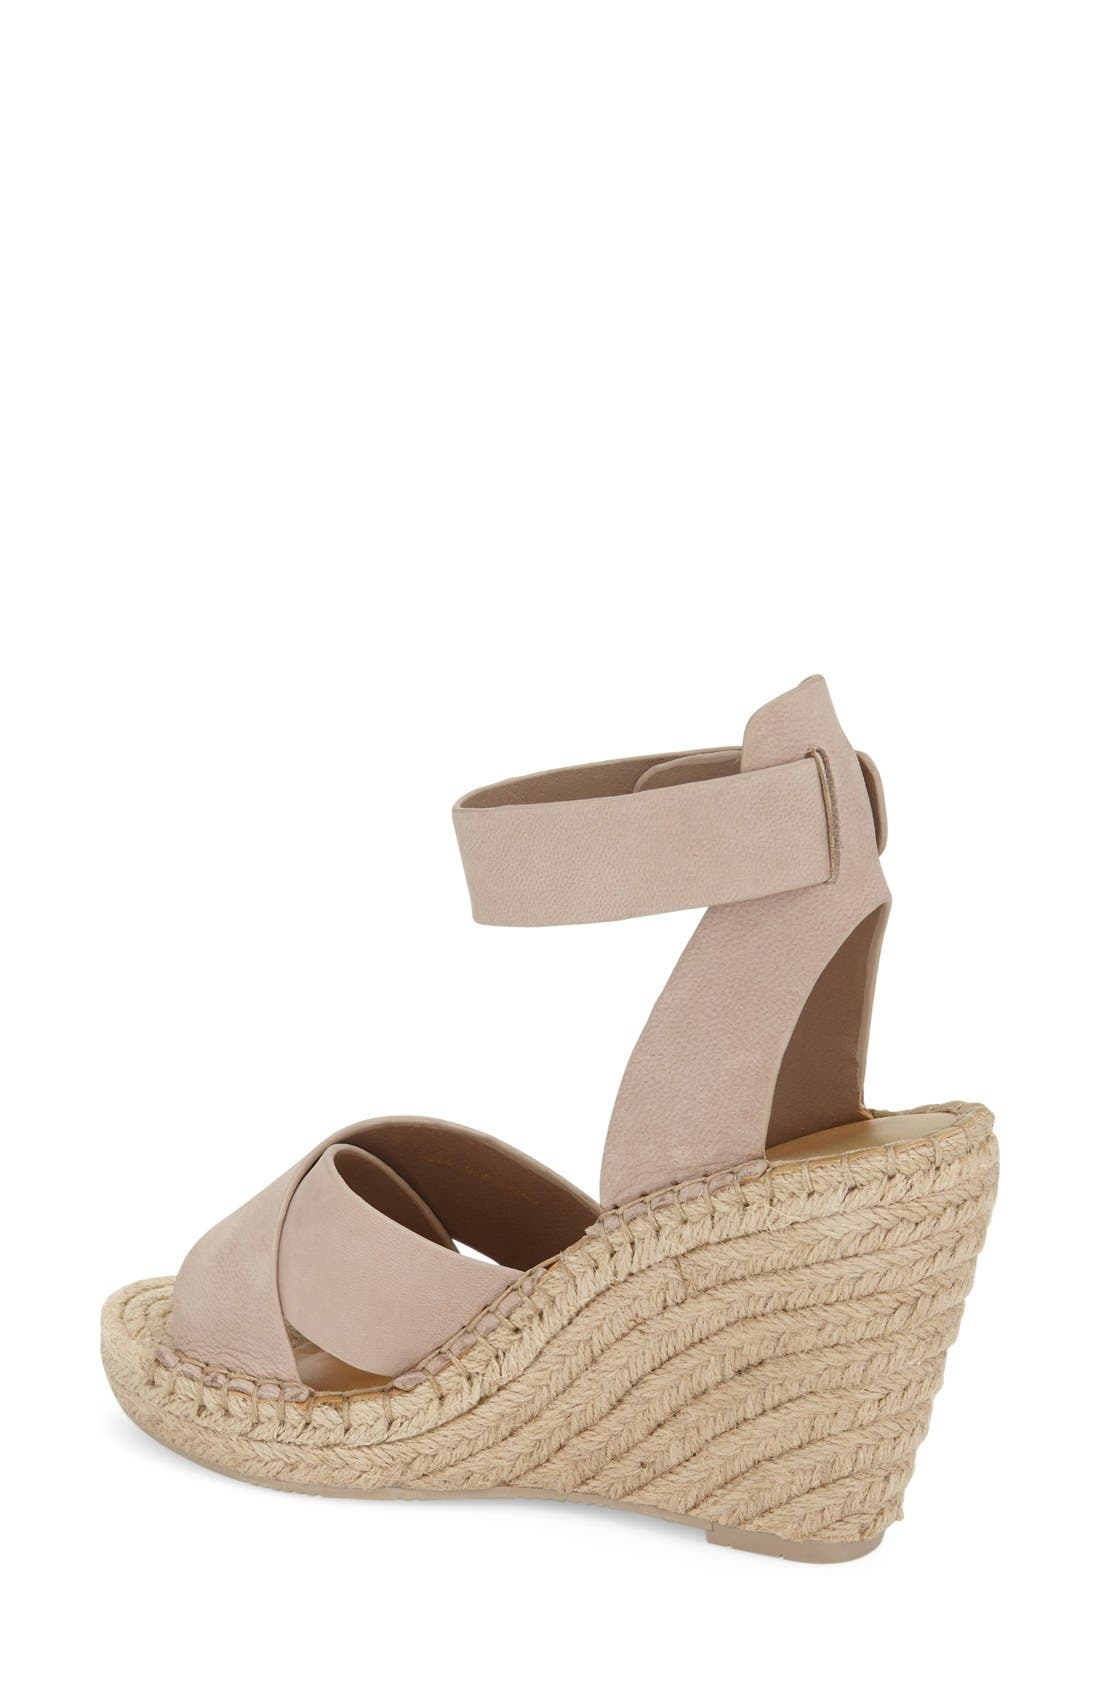 Alternate Image 2  - Dolce Vita 'Nova' Espadrille Wedge Sandal (Women)